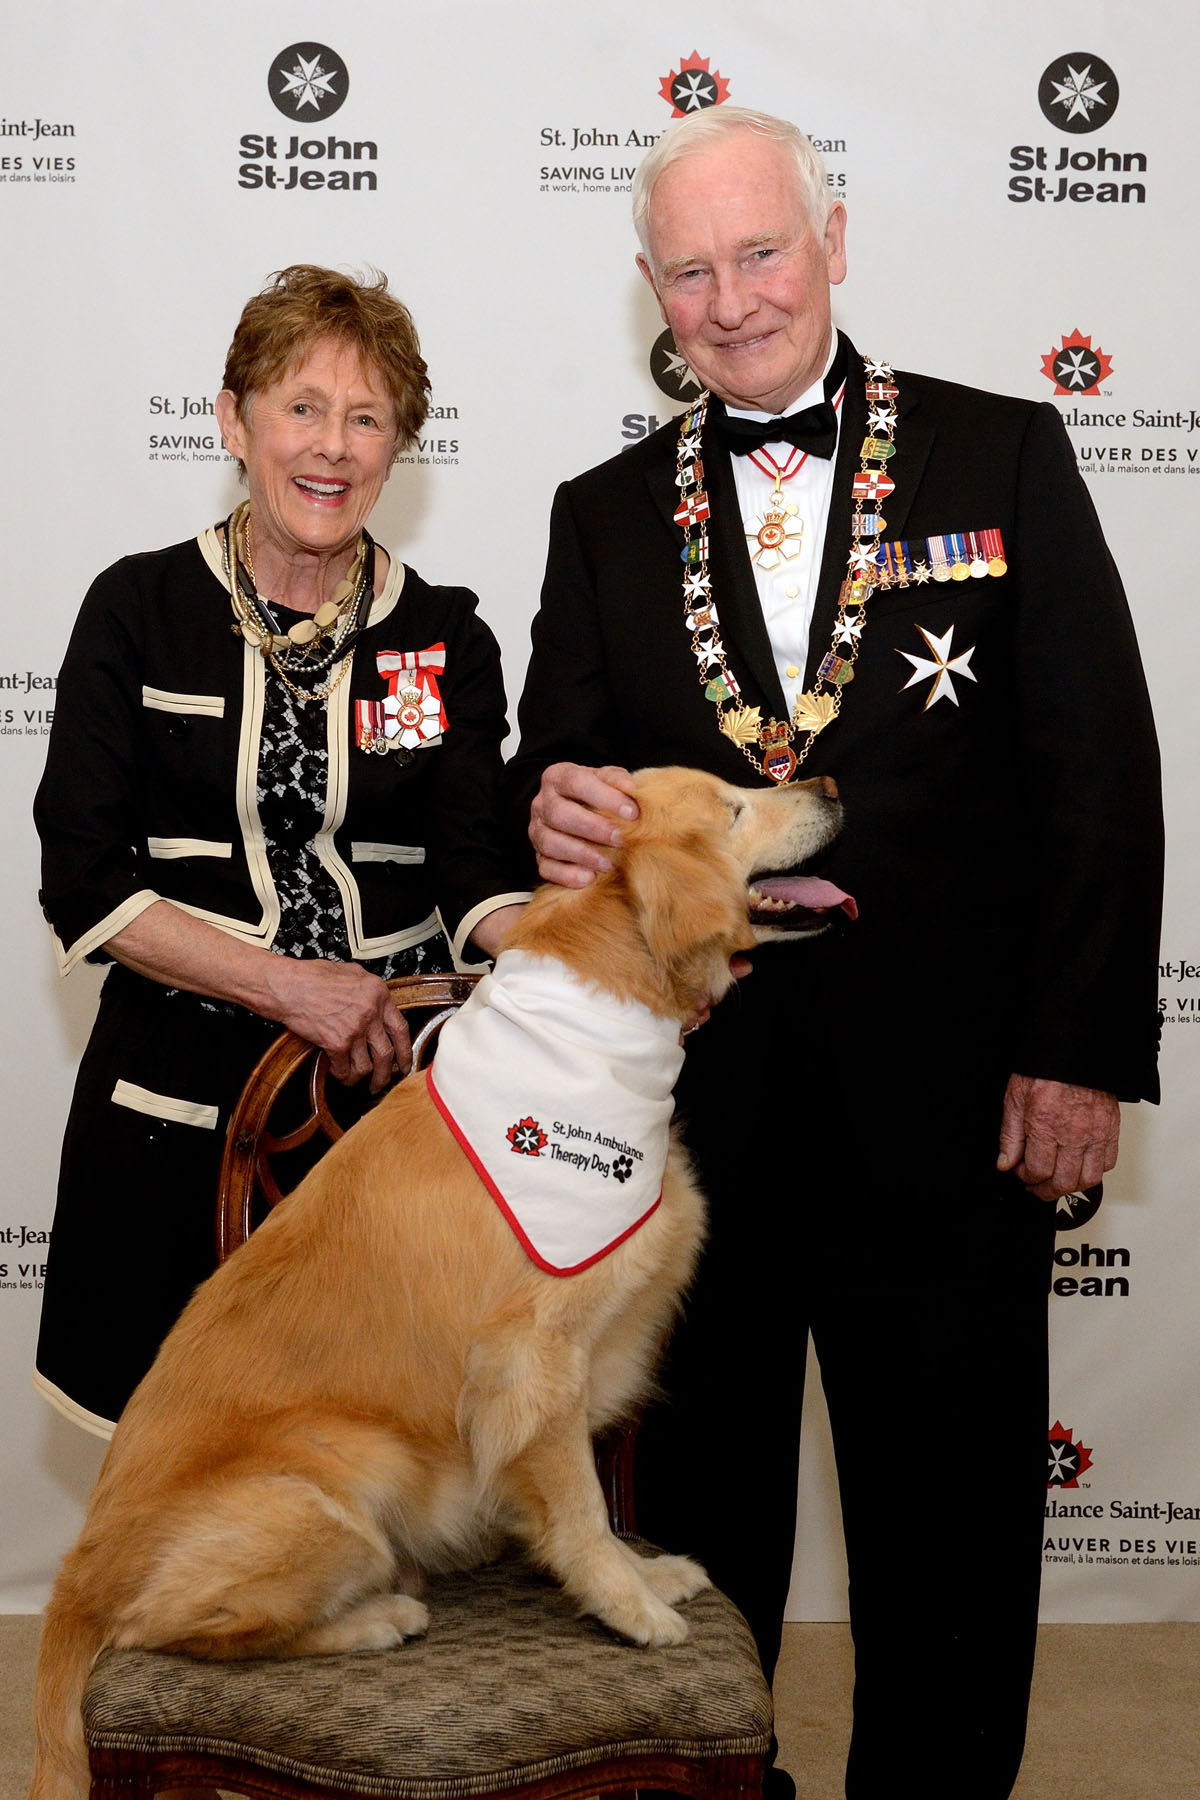 Their Excellencies attended the International Meeting of the Order of St. John, in Toronto. On this occasion, they also learned more about the St. John Ambulance therapy dog program, one that is unique to Canada.